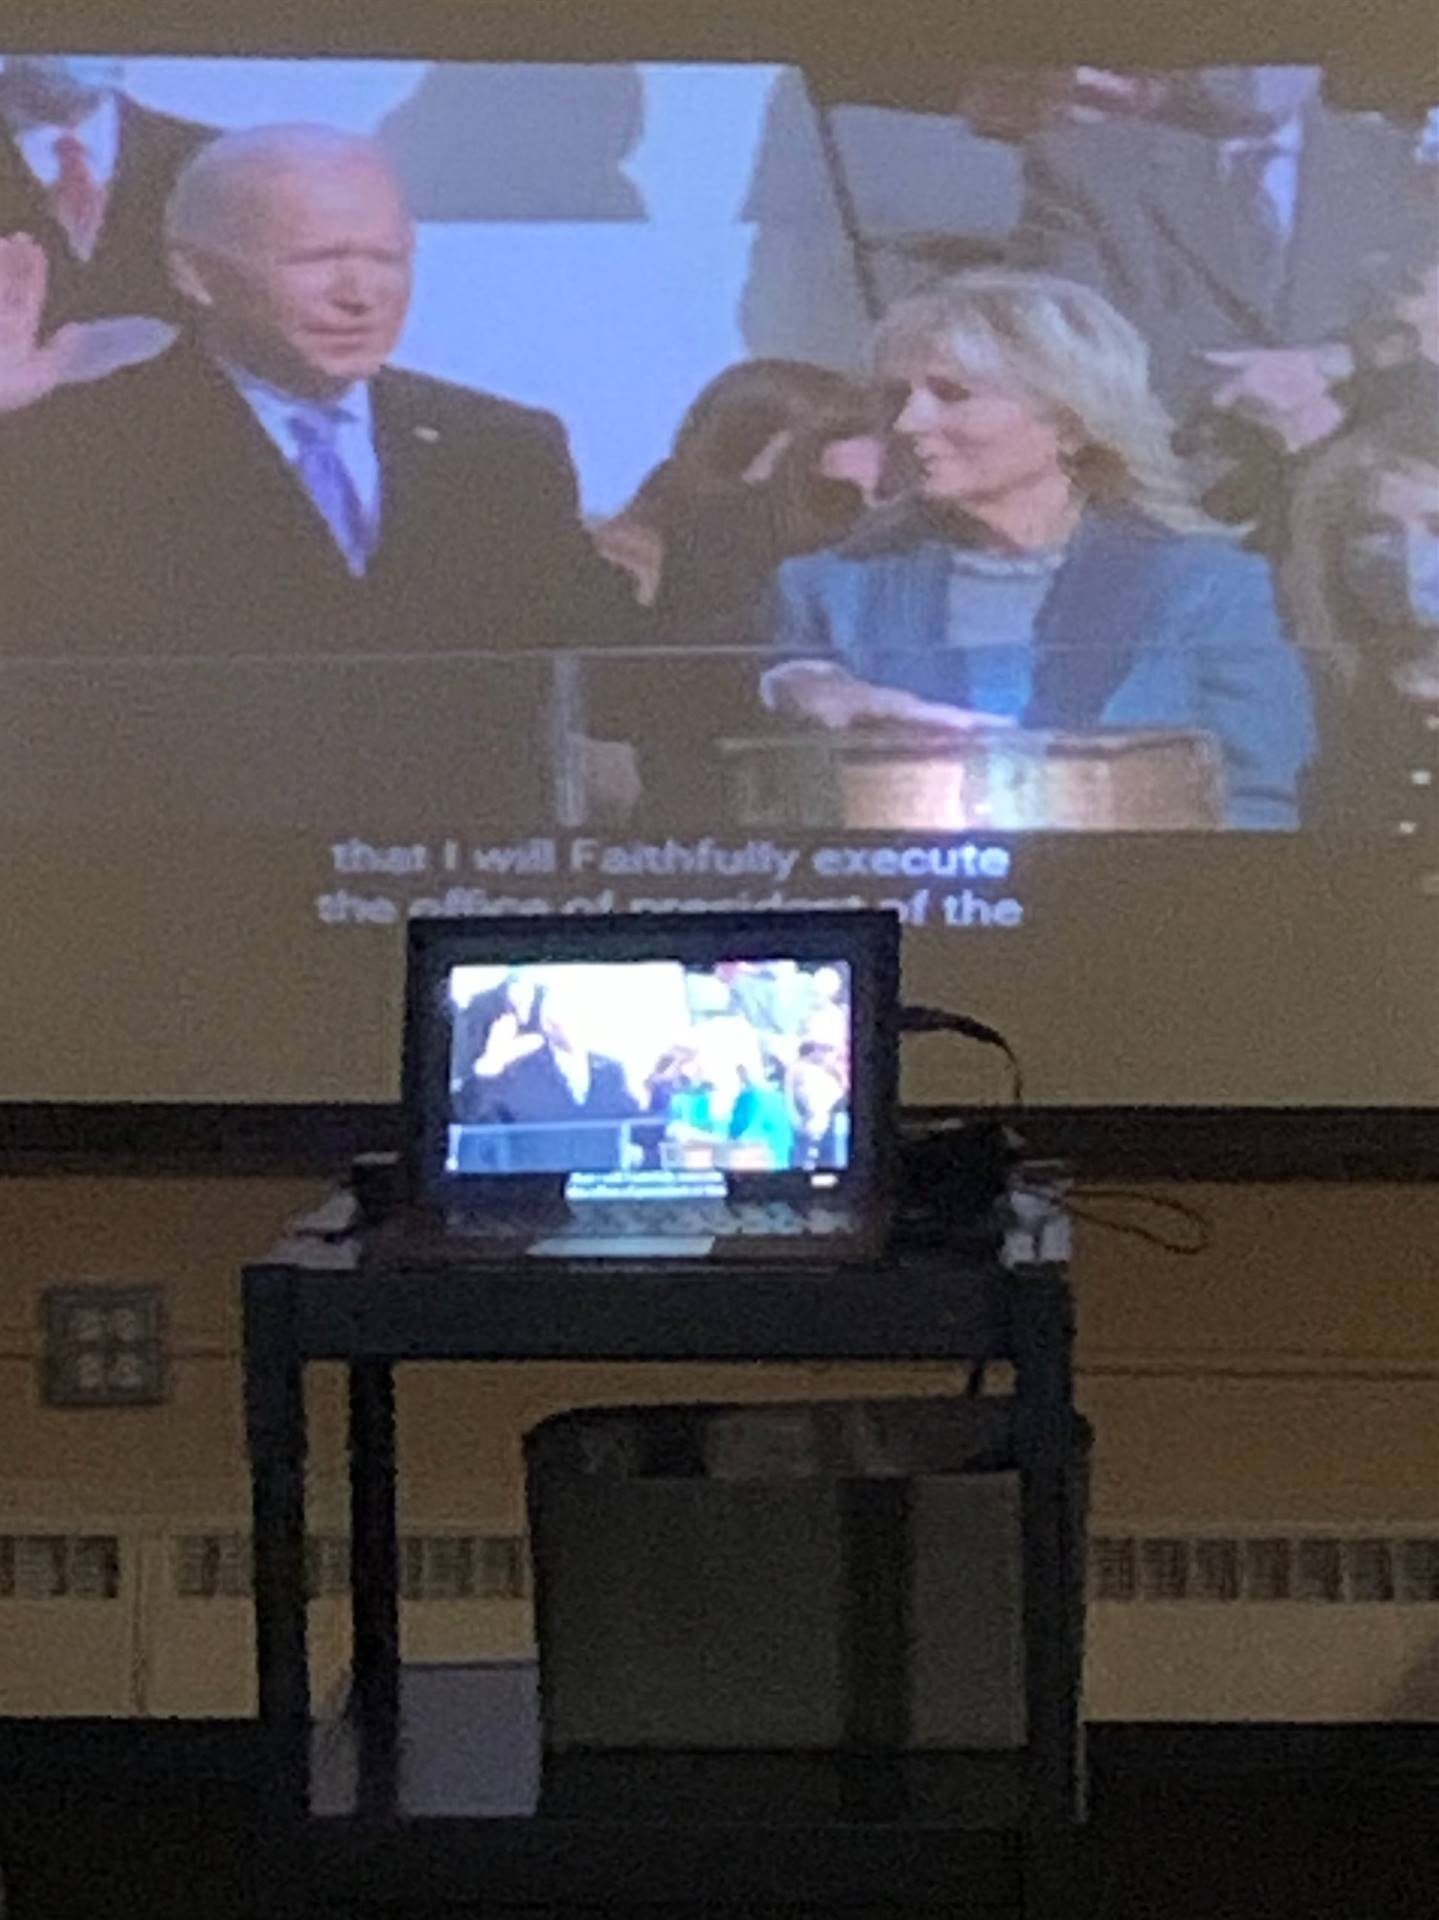 Carrington Students watched Presidential Inauguration live stream and completed activity to reinforc